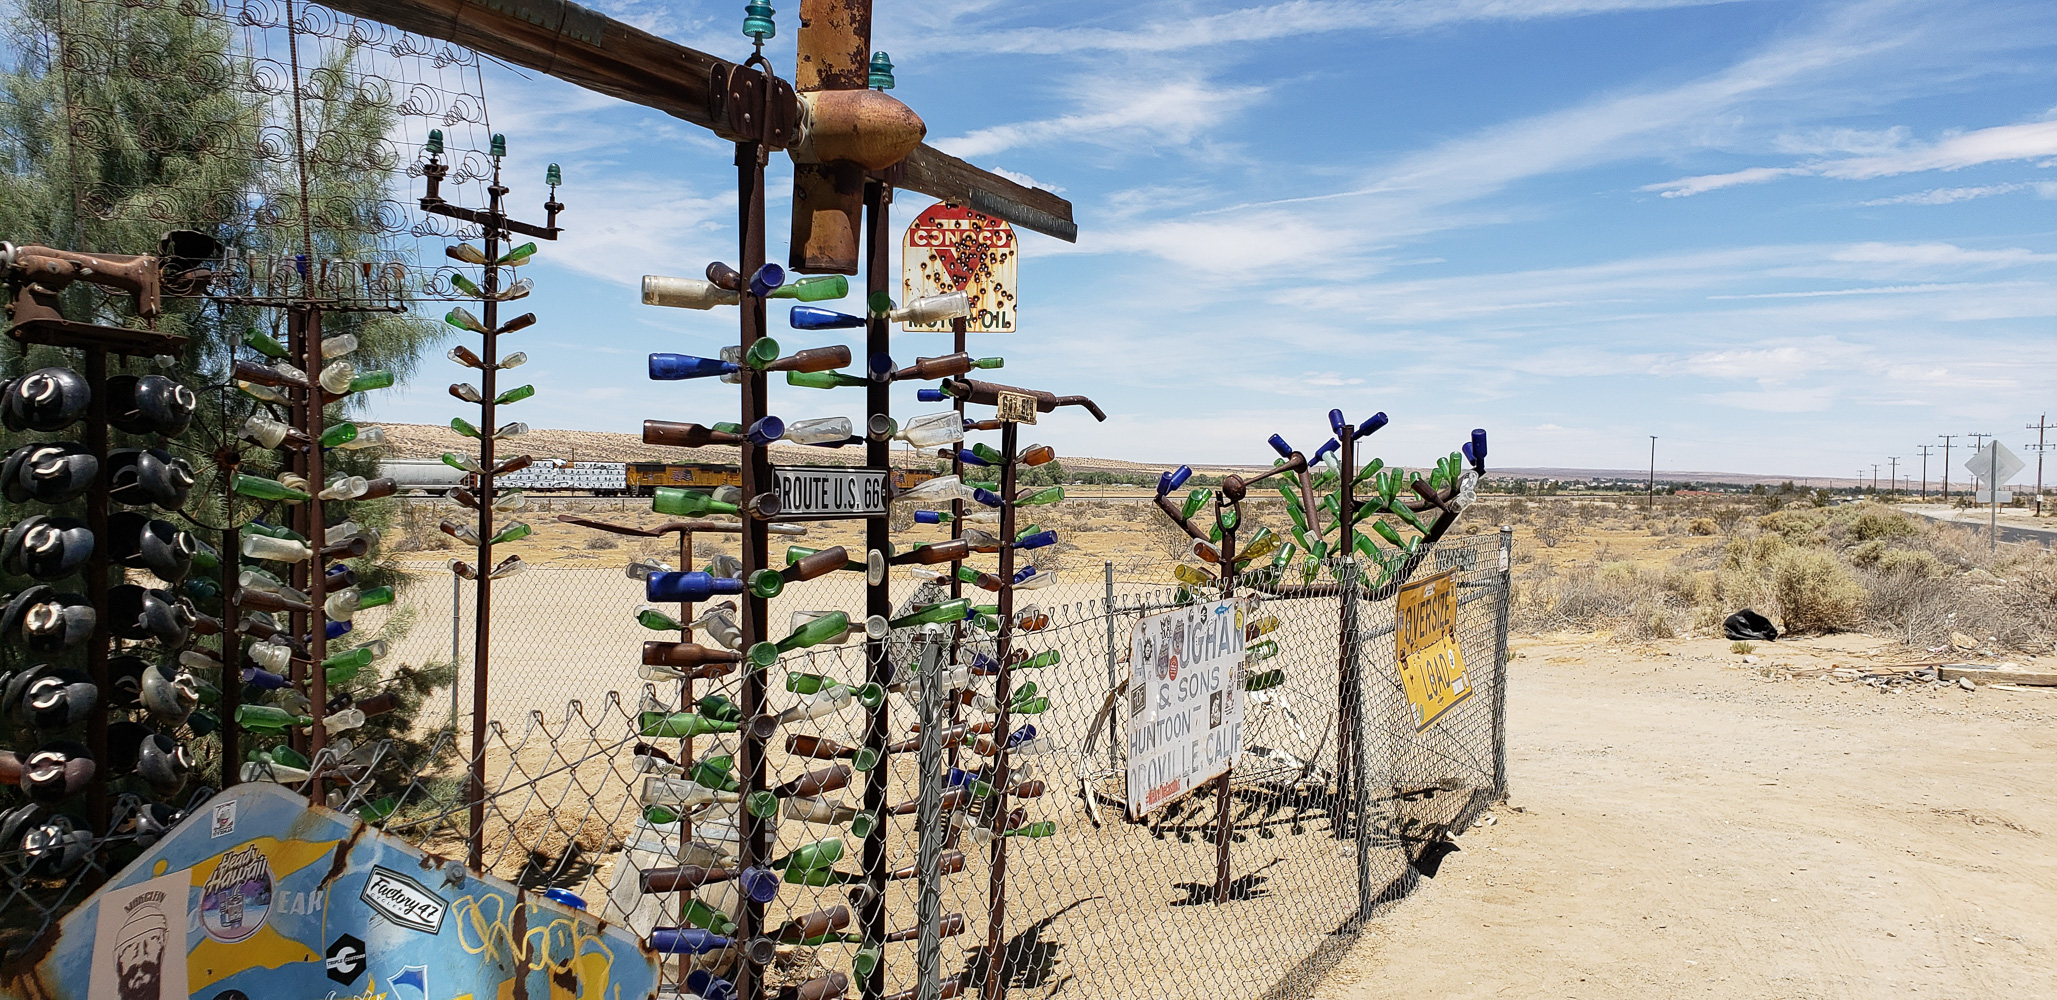 Along Route 66 in Califironia, Elmers Bottle Tree Ranch